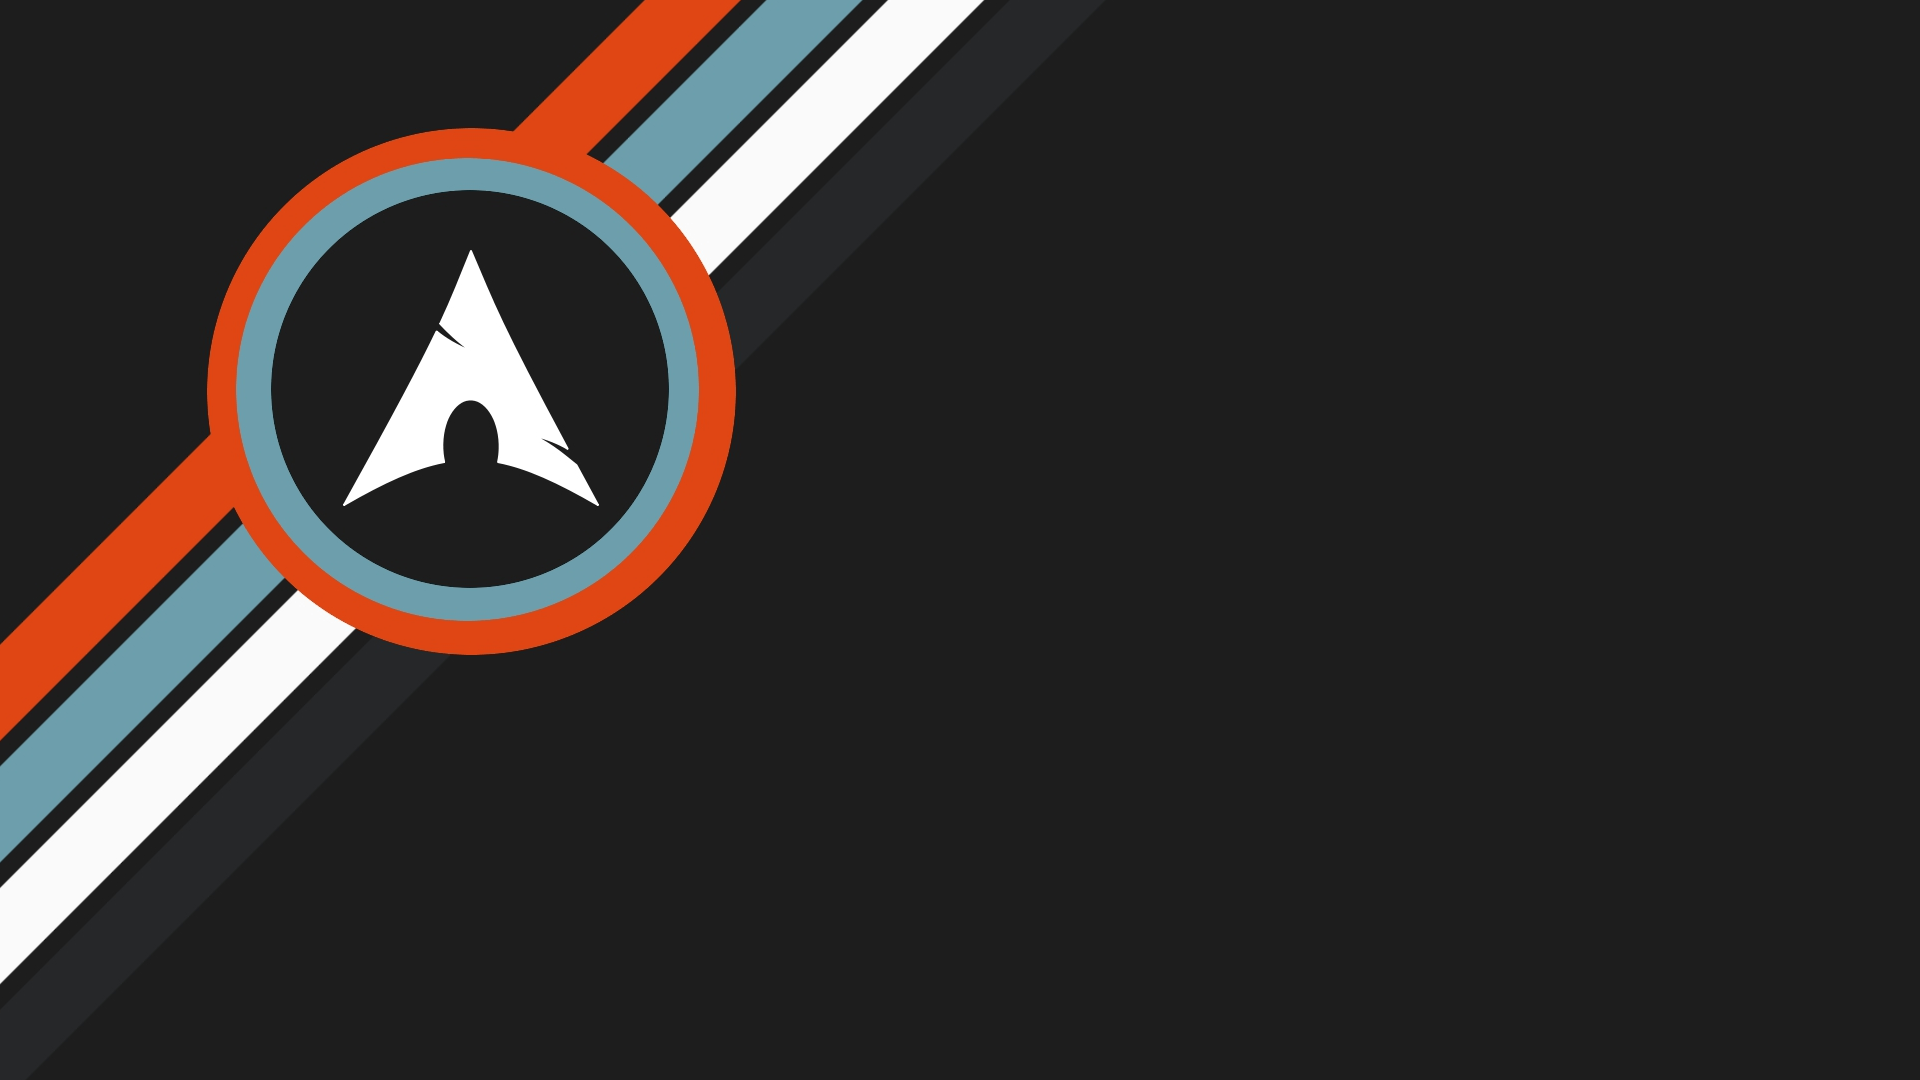 Arch linux wallpapers wallpaper cave for Architecture 3d linux